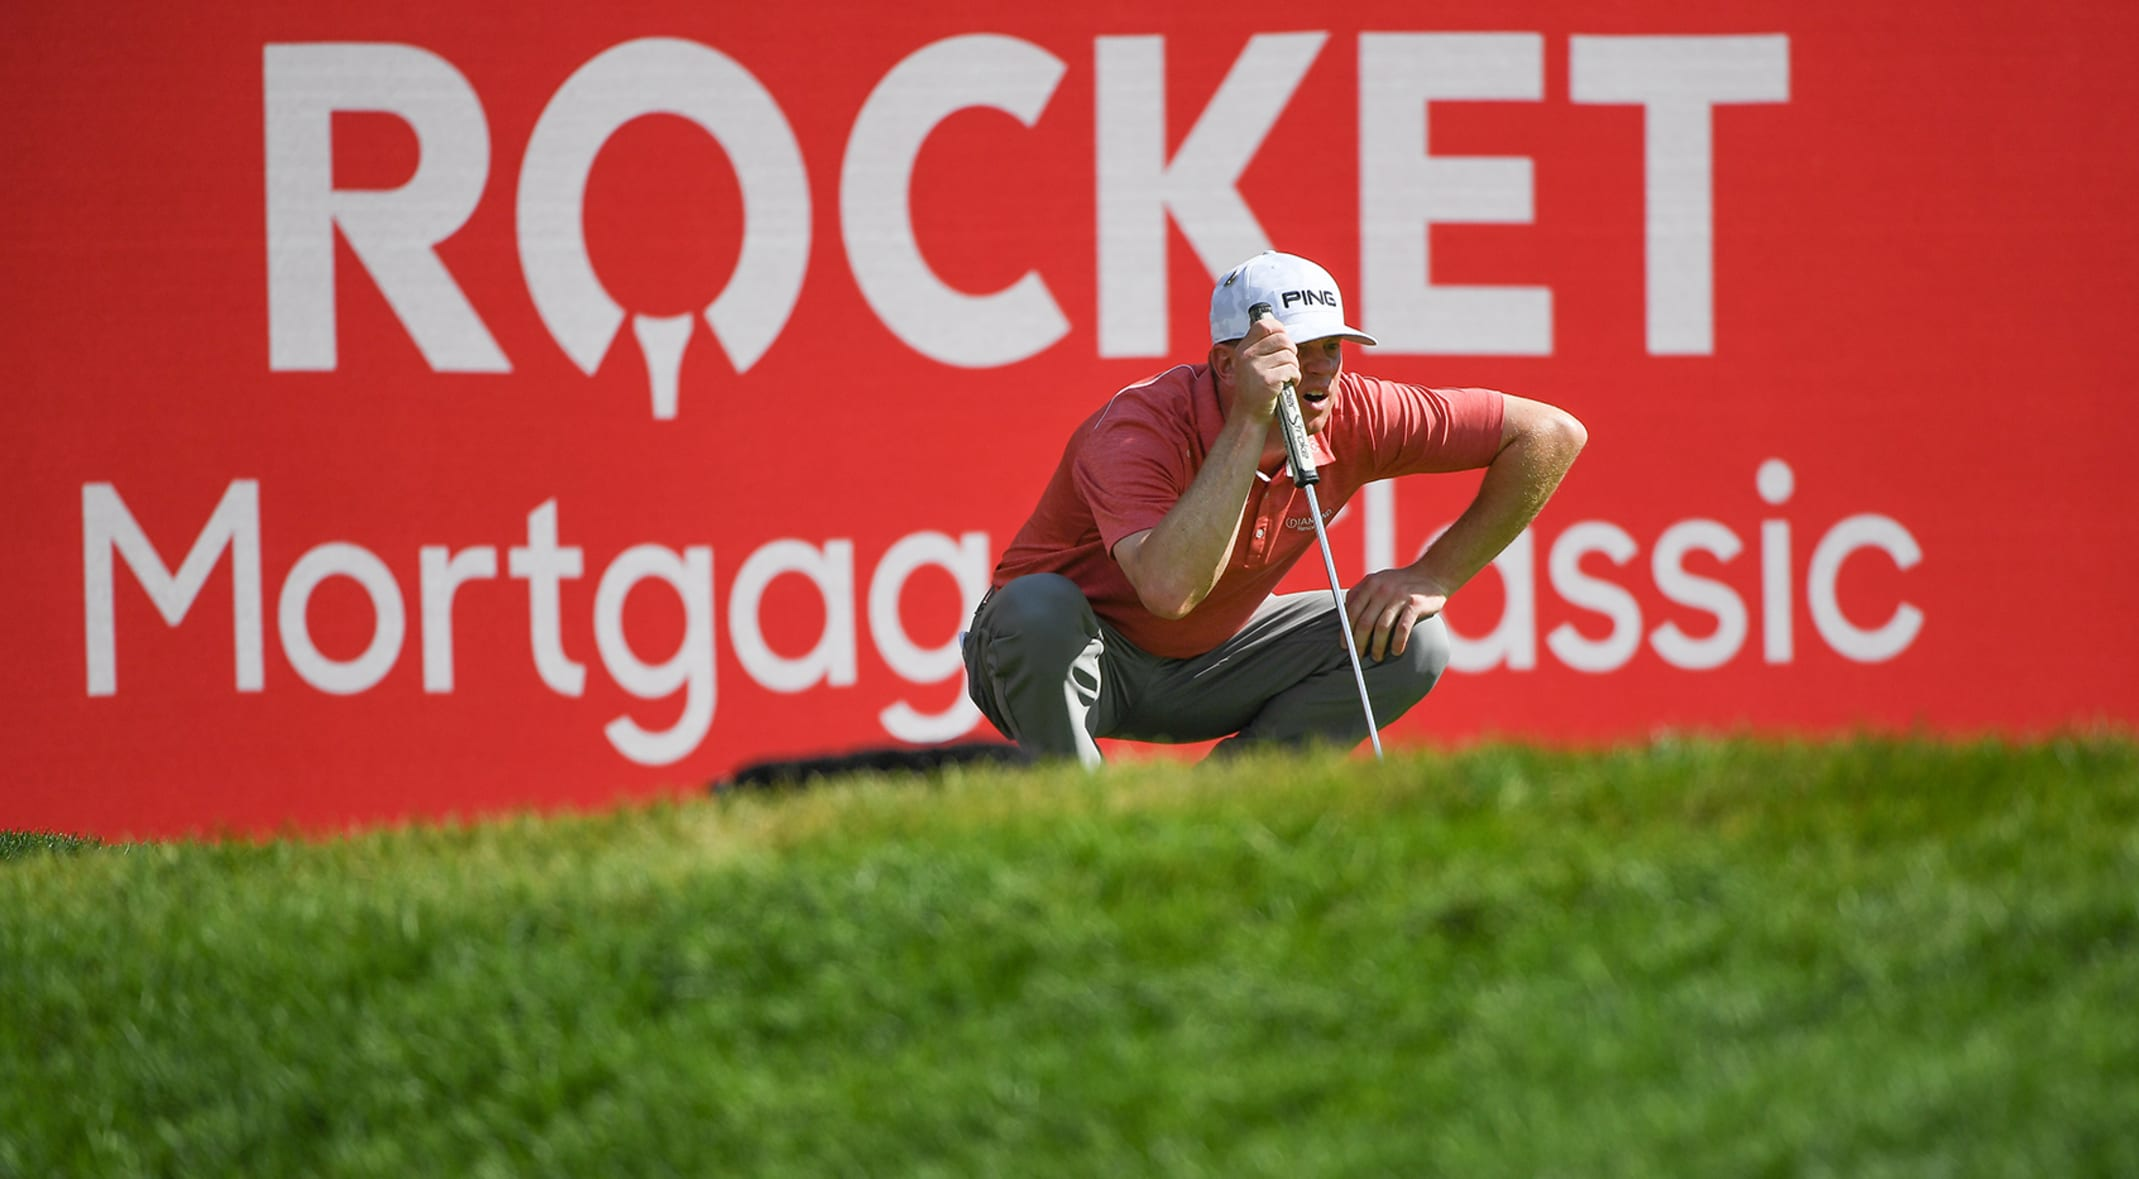 PGA Rocket Mortgage Classic – Tournament Preview: July 2020